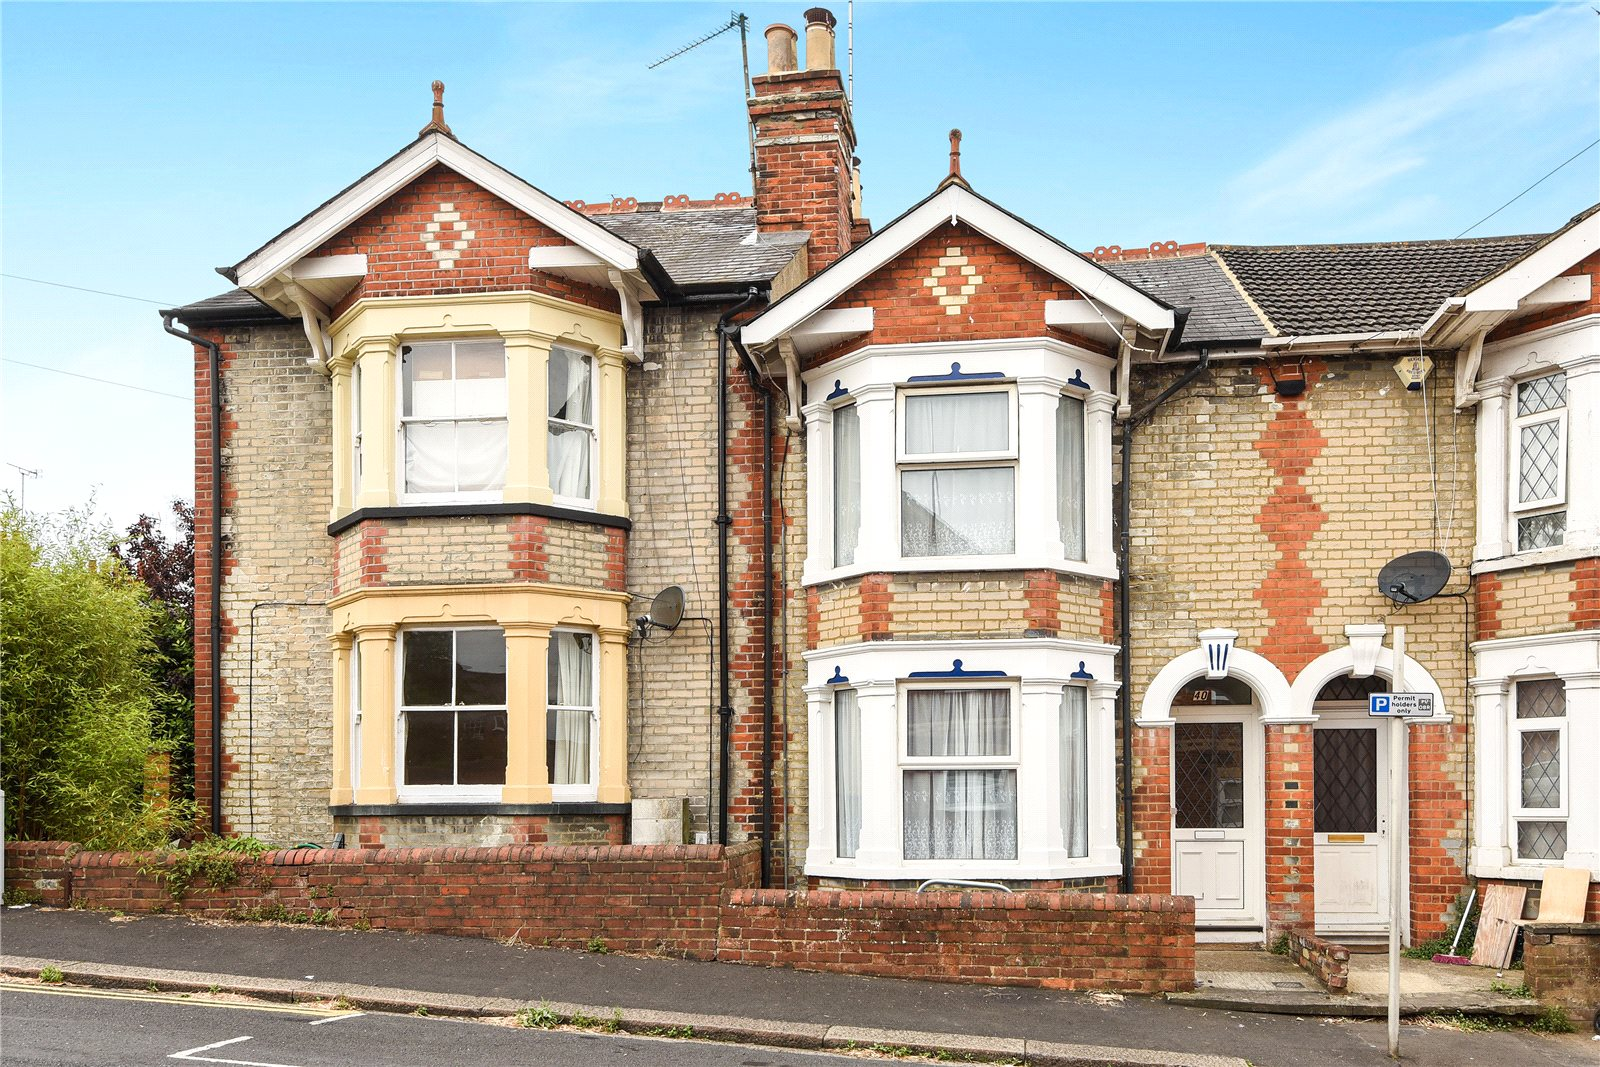 3 Bedrooms Terraced House for sale in Franklin Street, Reading, Berkshire, RG1